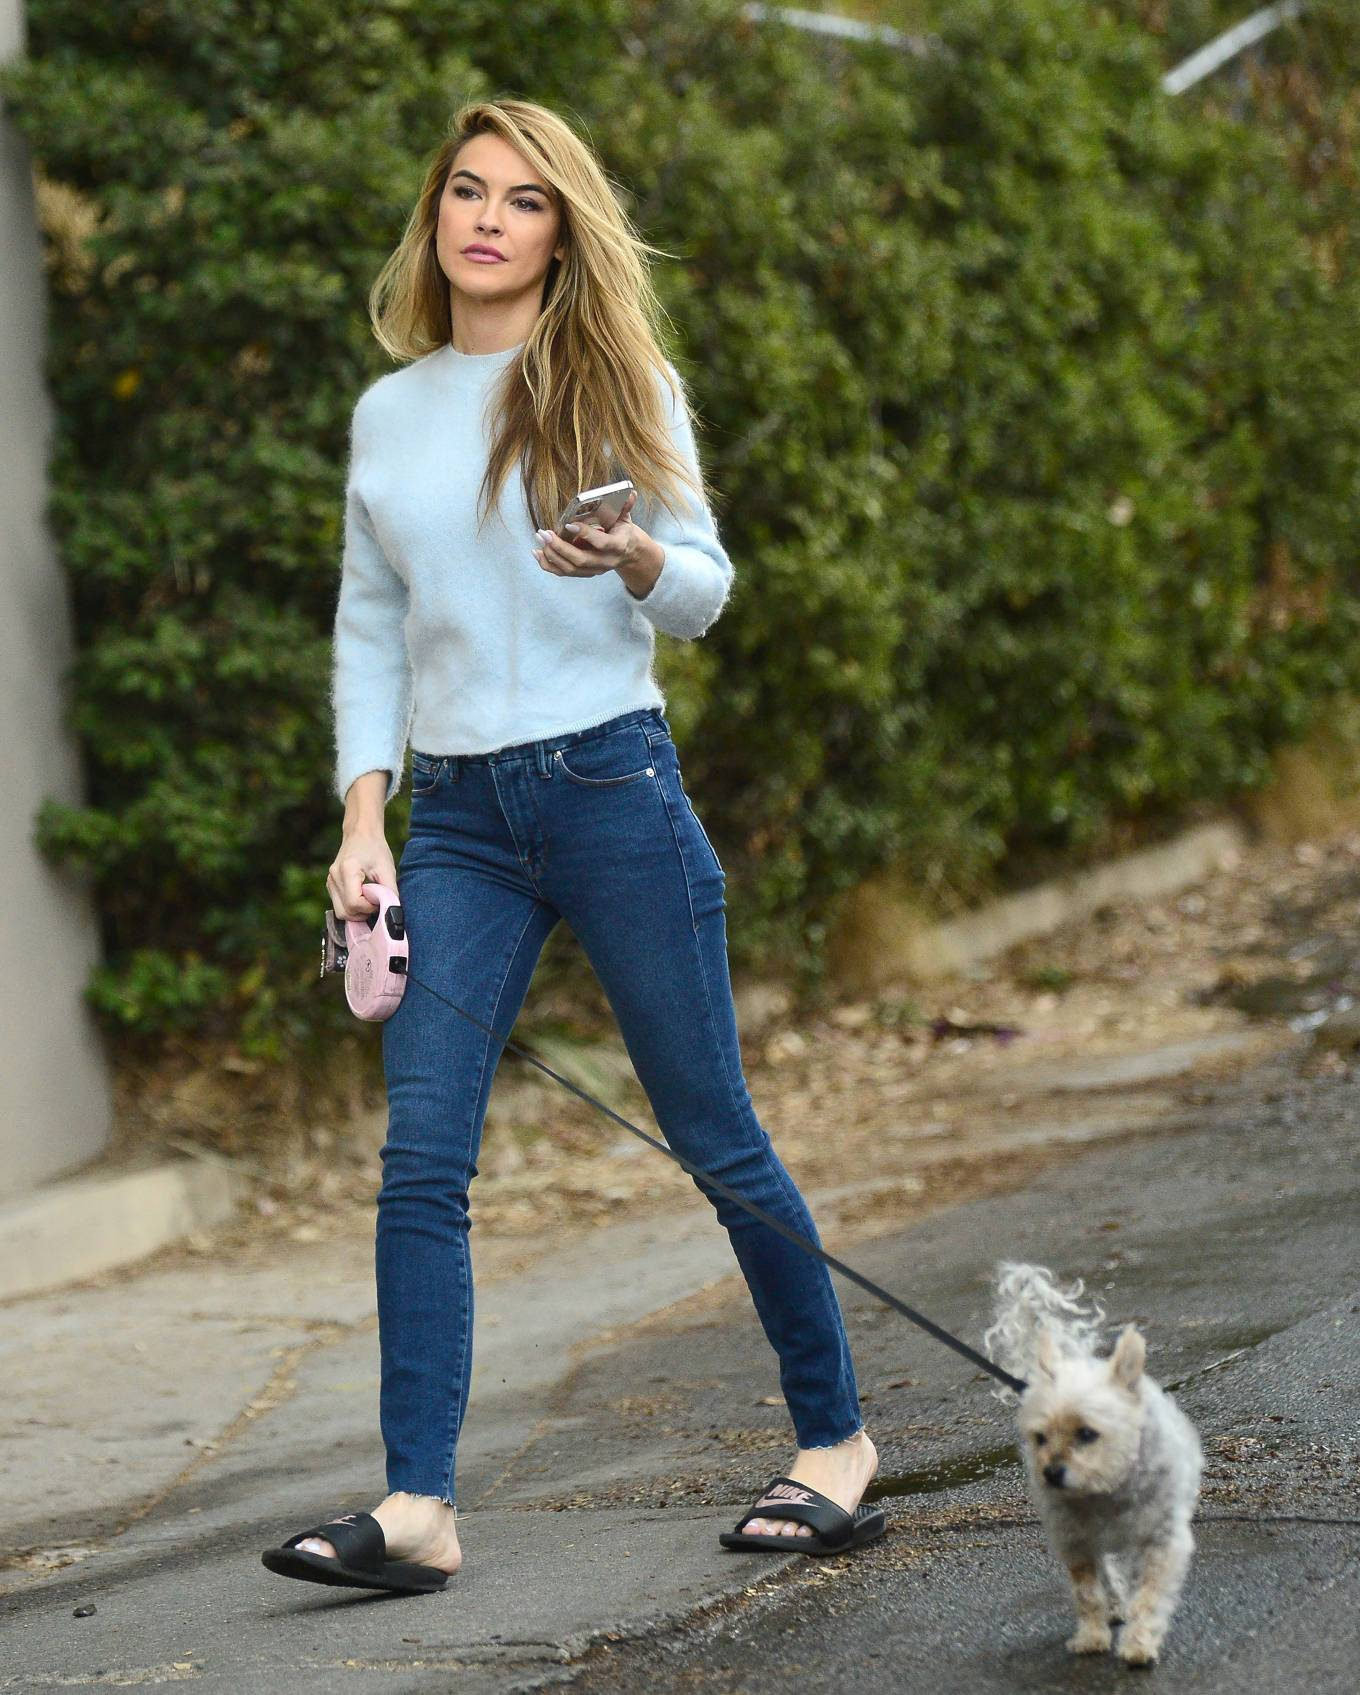 Chrishell Stause - Out for a walk with her dog in the Hollywood Hills